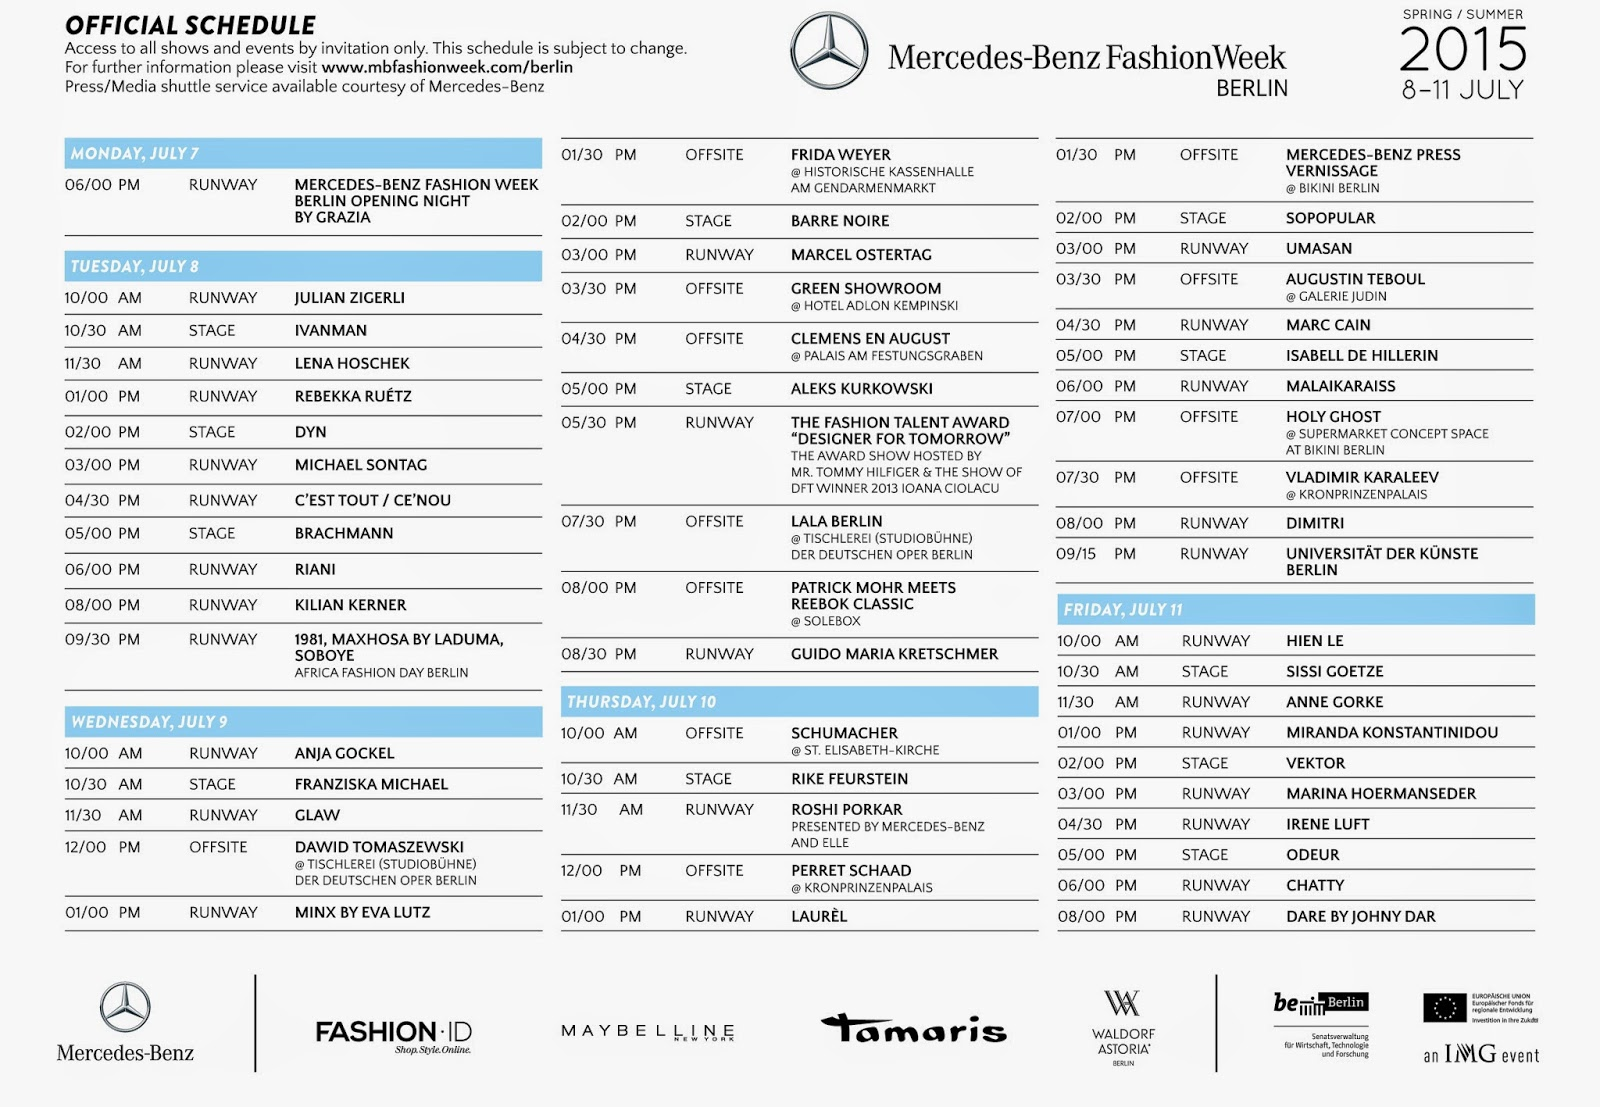 MERCEDES BENZ BERLIN FASHION WEEK DESIGNER SCHEDULE